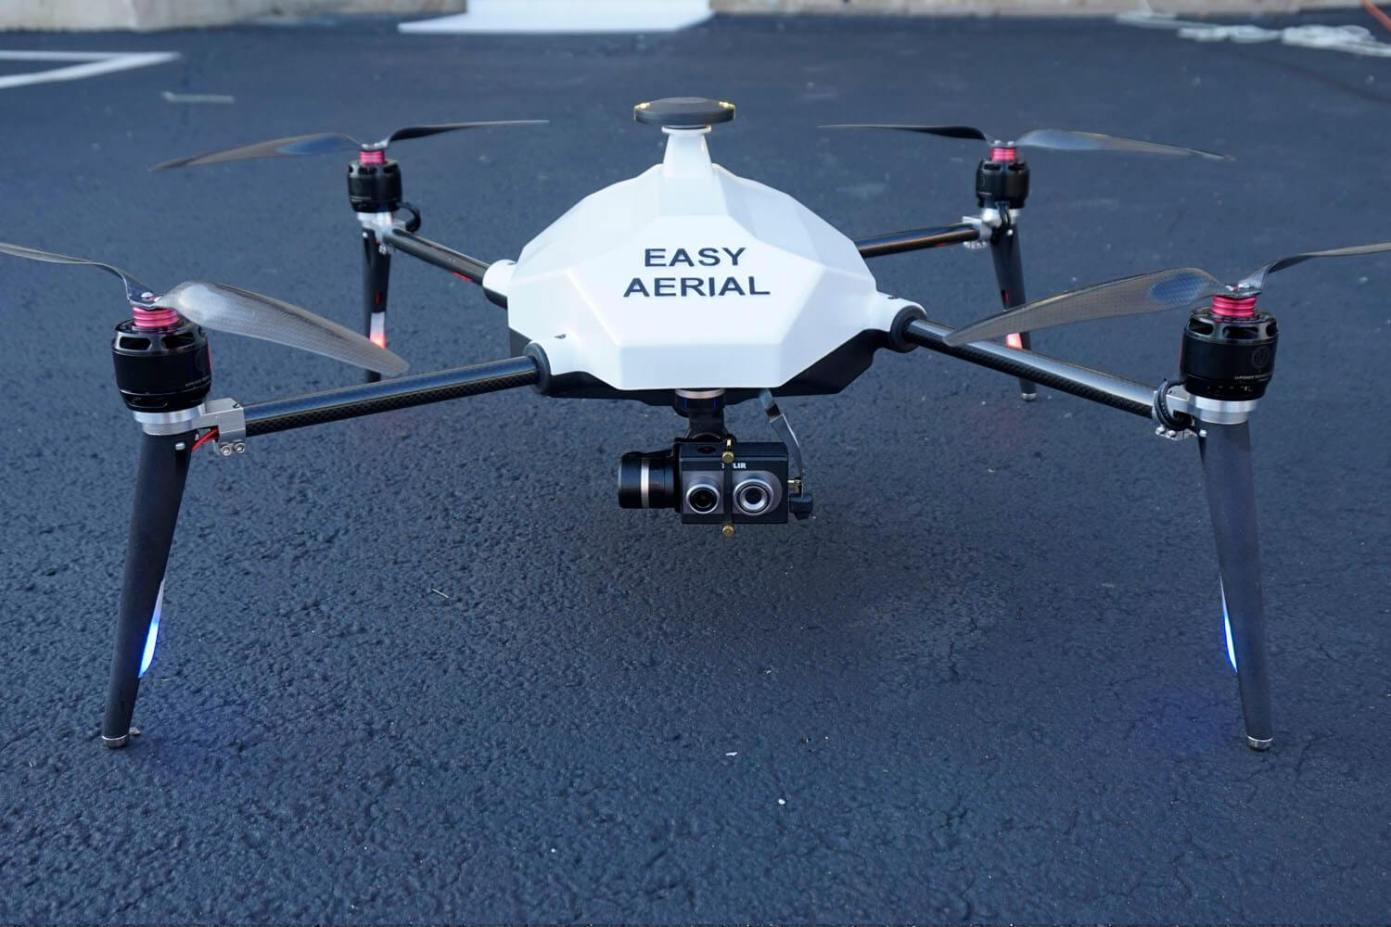 Drone startup Easy Aerial raises $6.15M in Series A funding